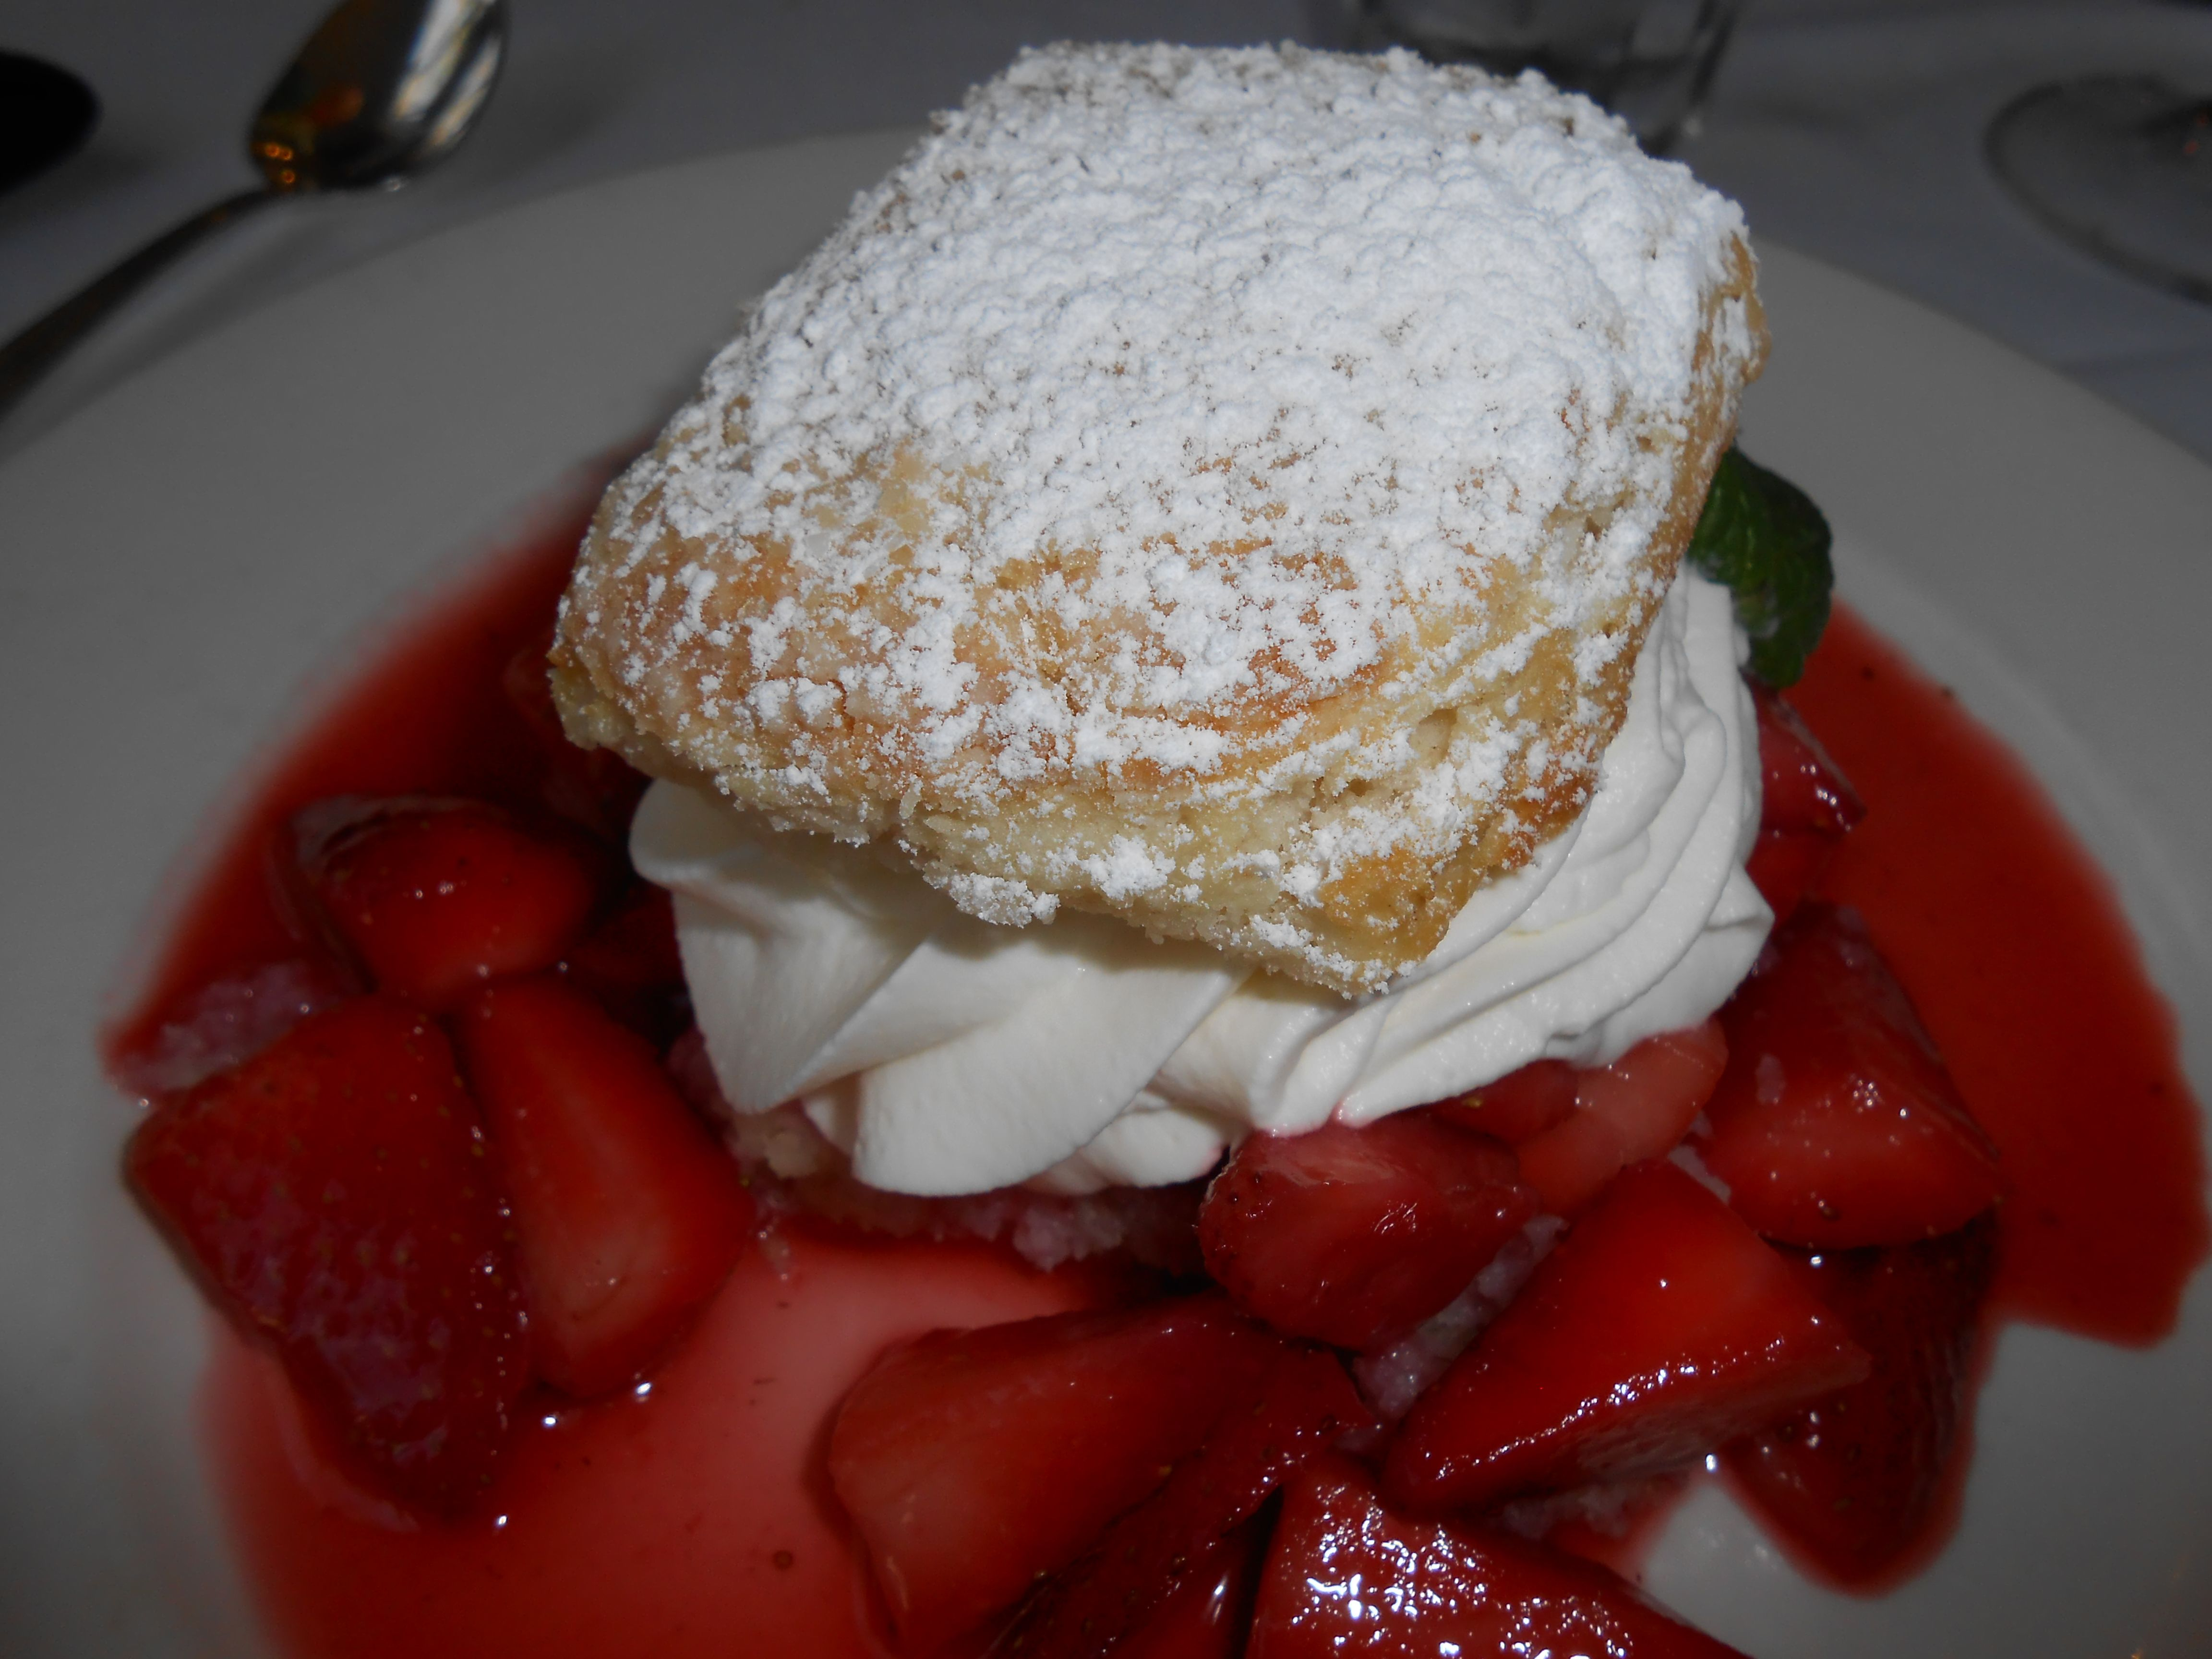 Strawberry shortcake at Commander's Palace Restaurant in New Orleans